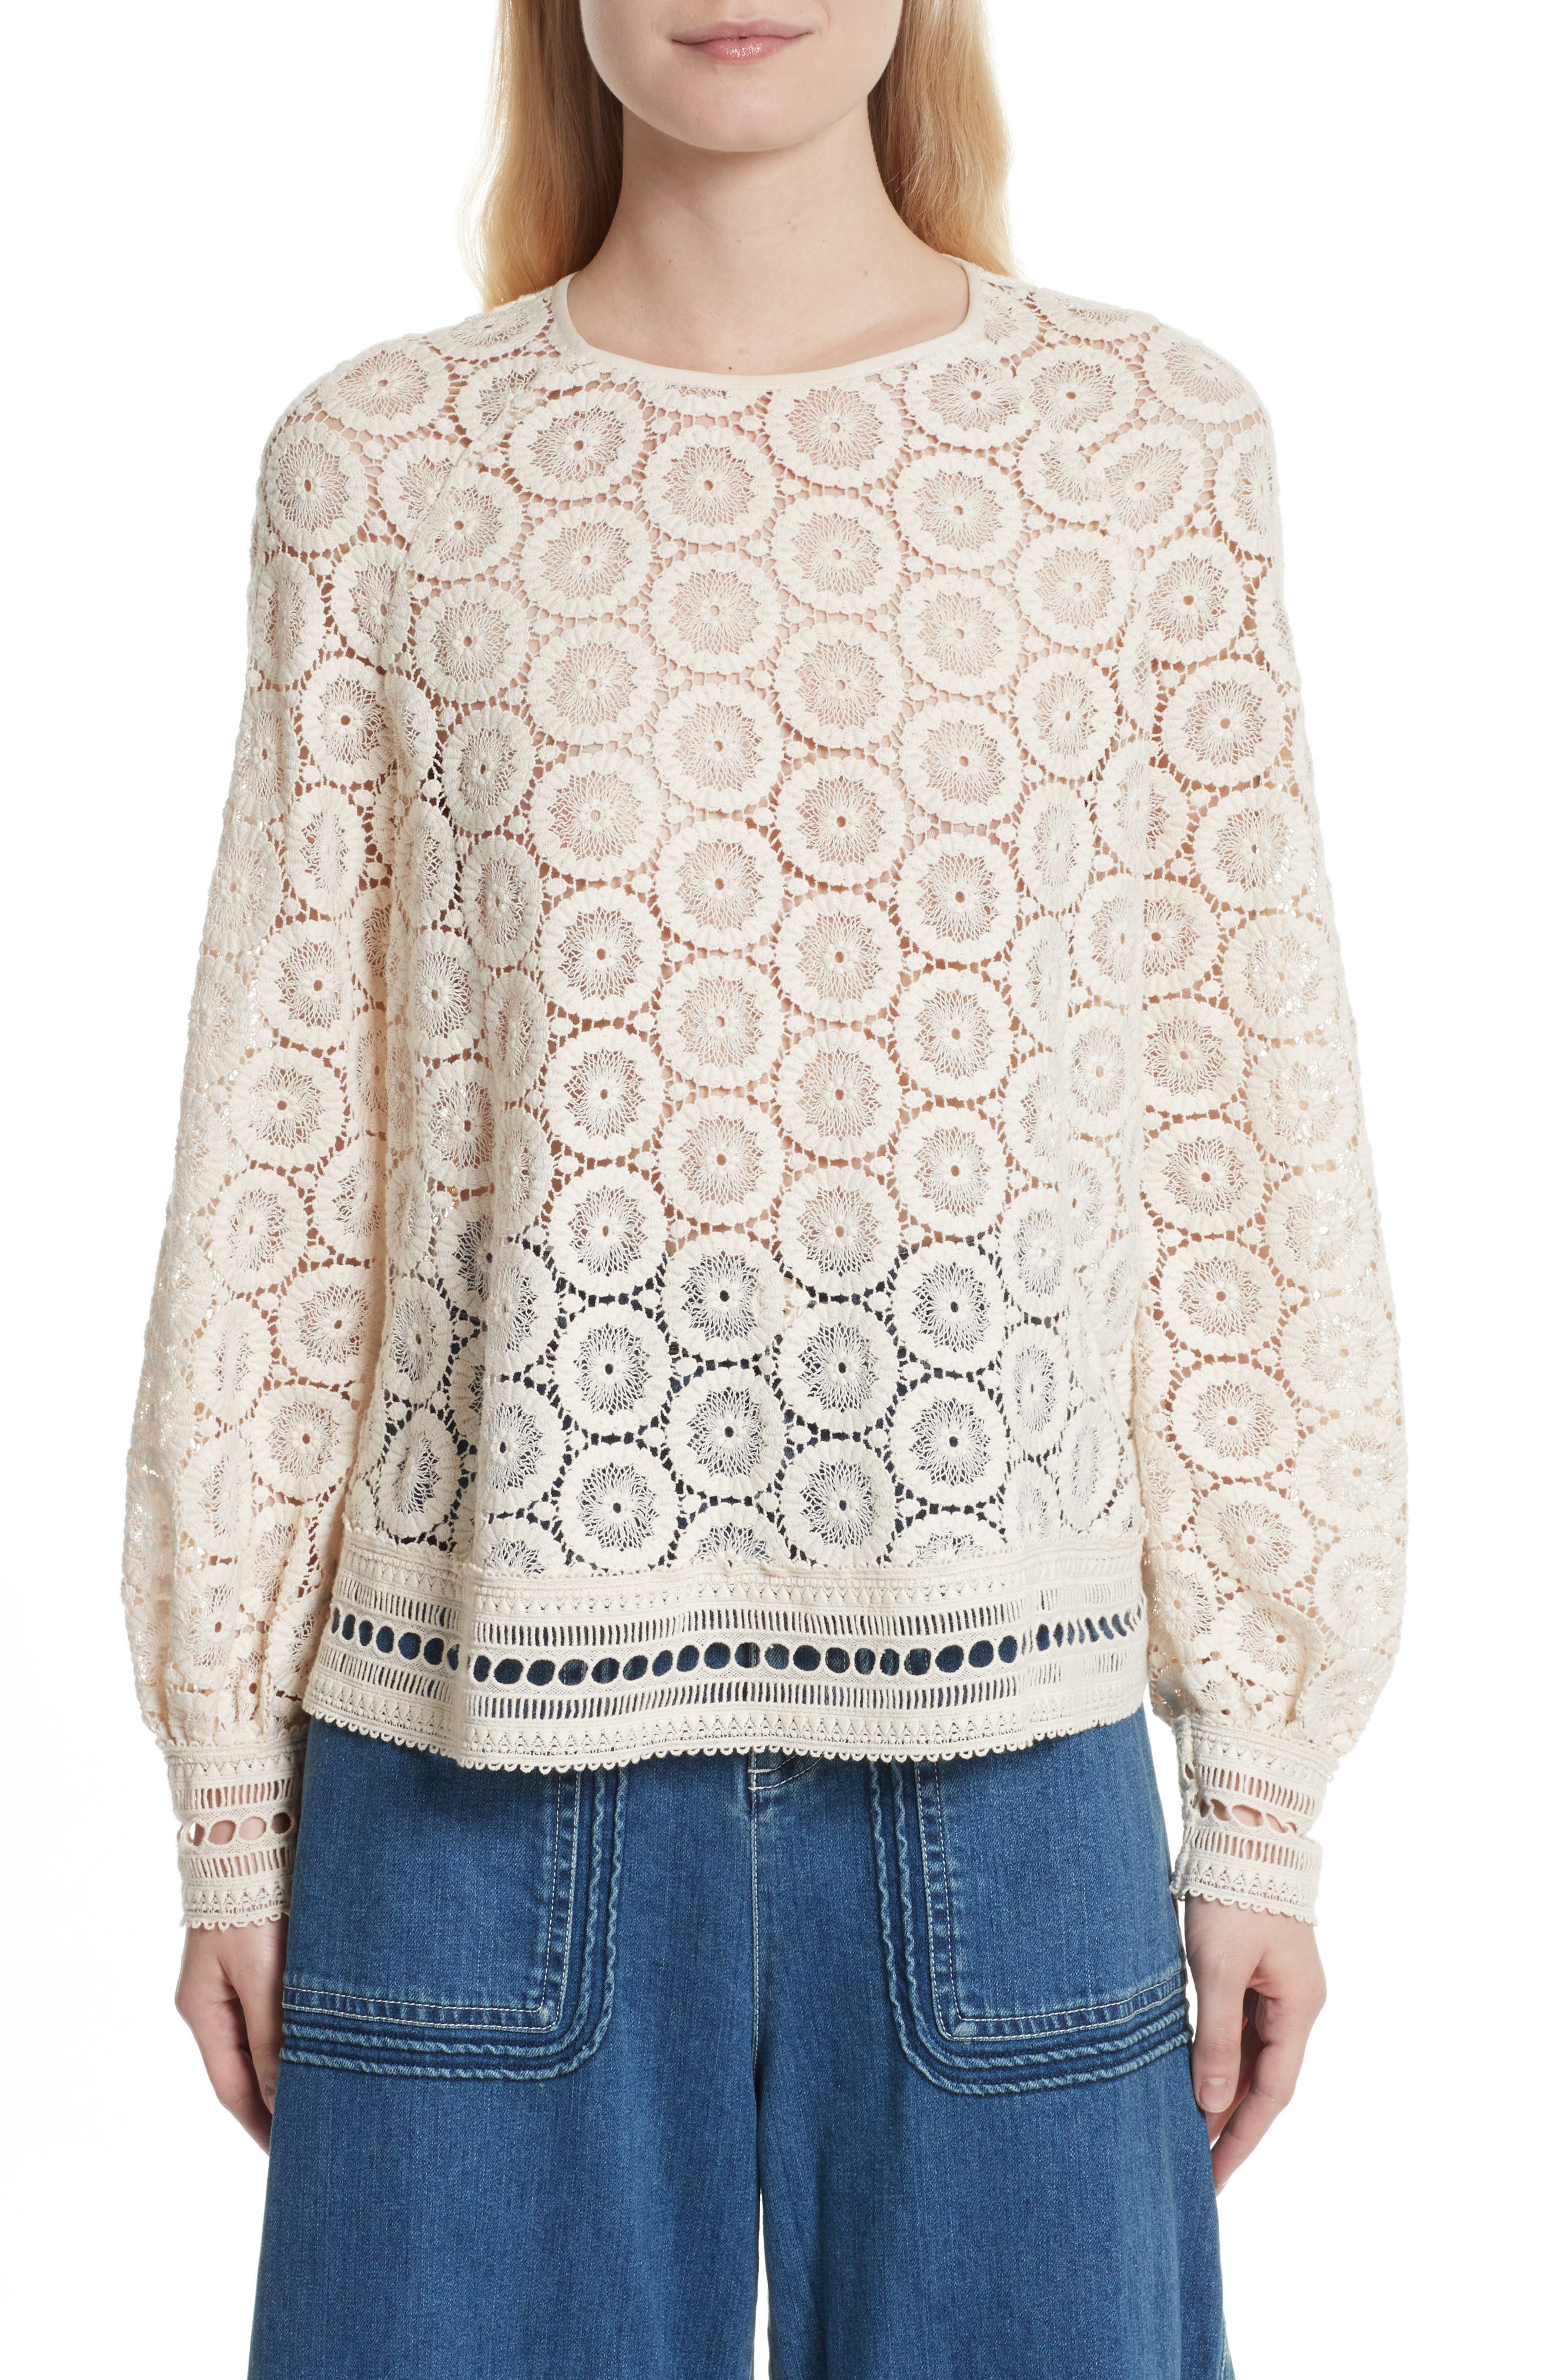 Main Image - See by Chloé Lace Top